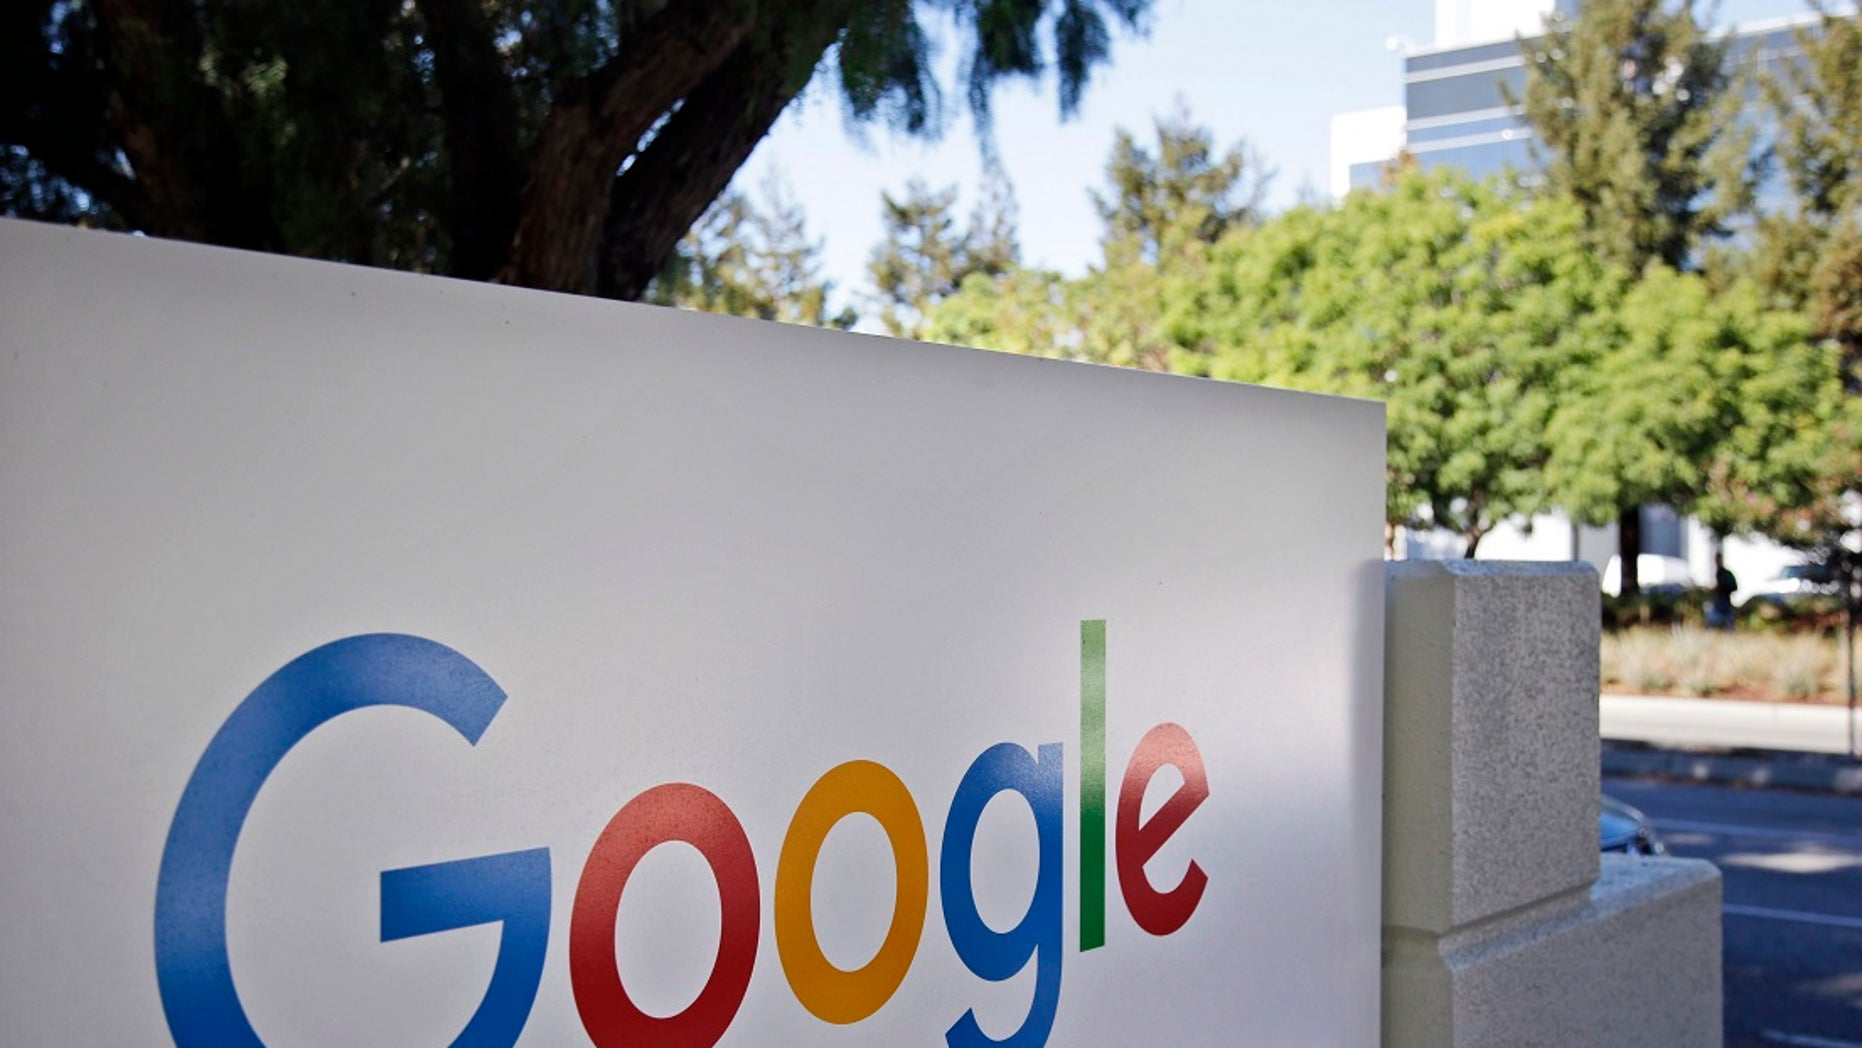 A study conducted by Google found some male employees were underpaid while doing similar work to their female colleagues. (AP Photo/Francois Mori, File)